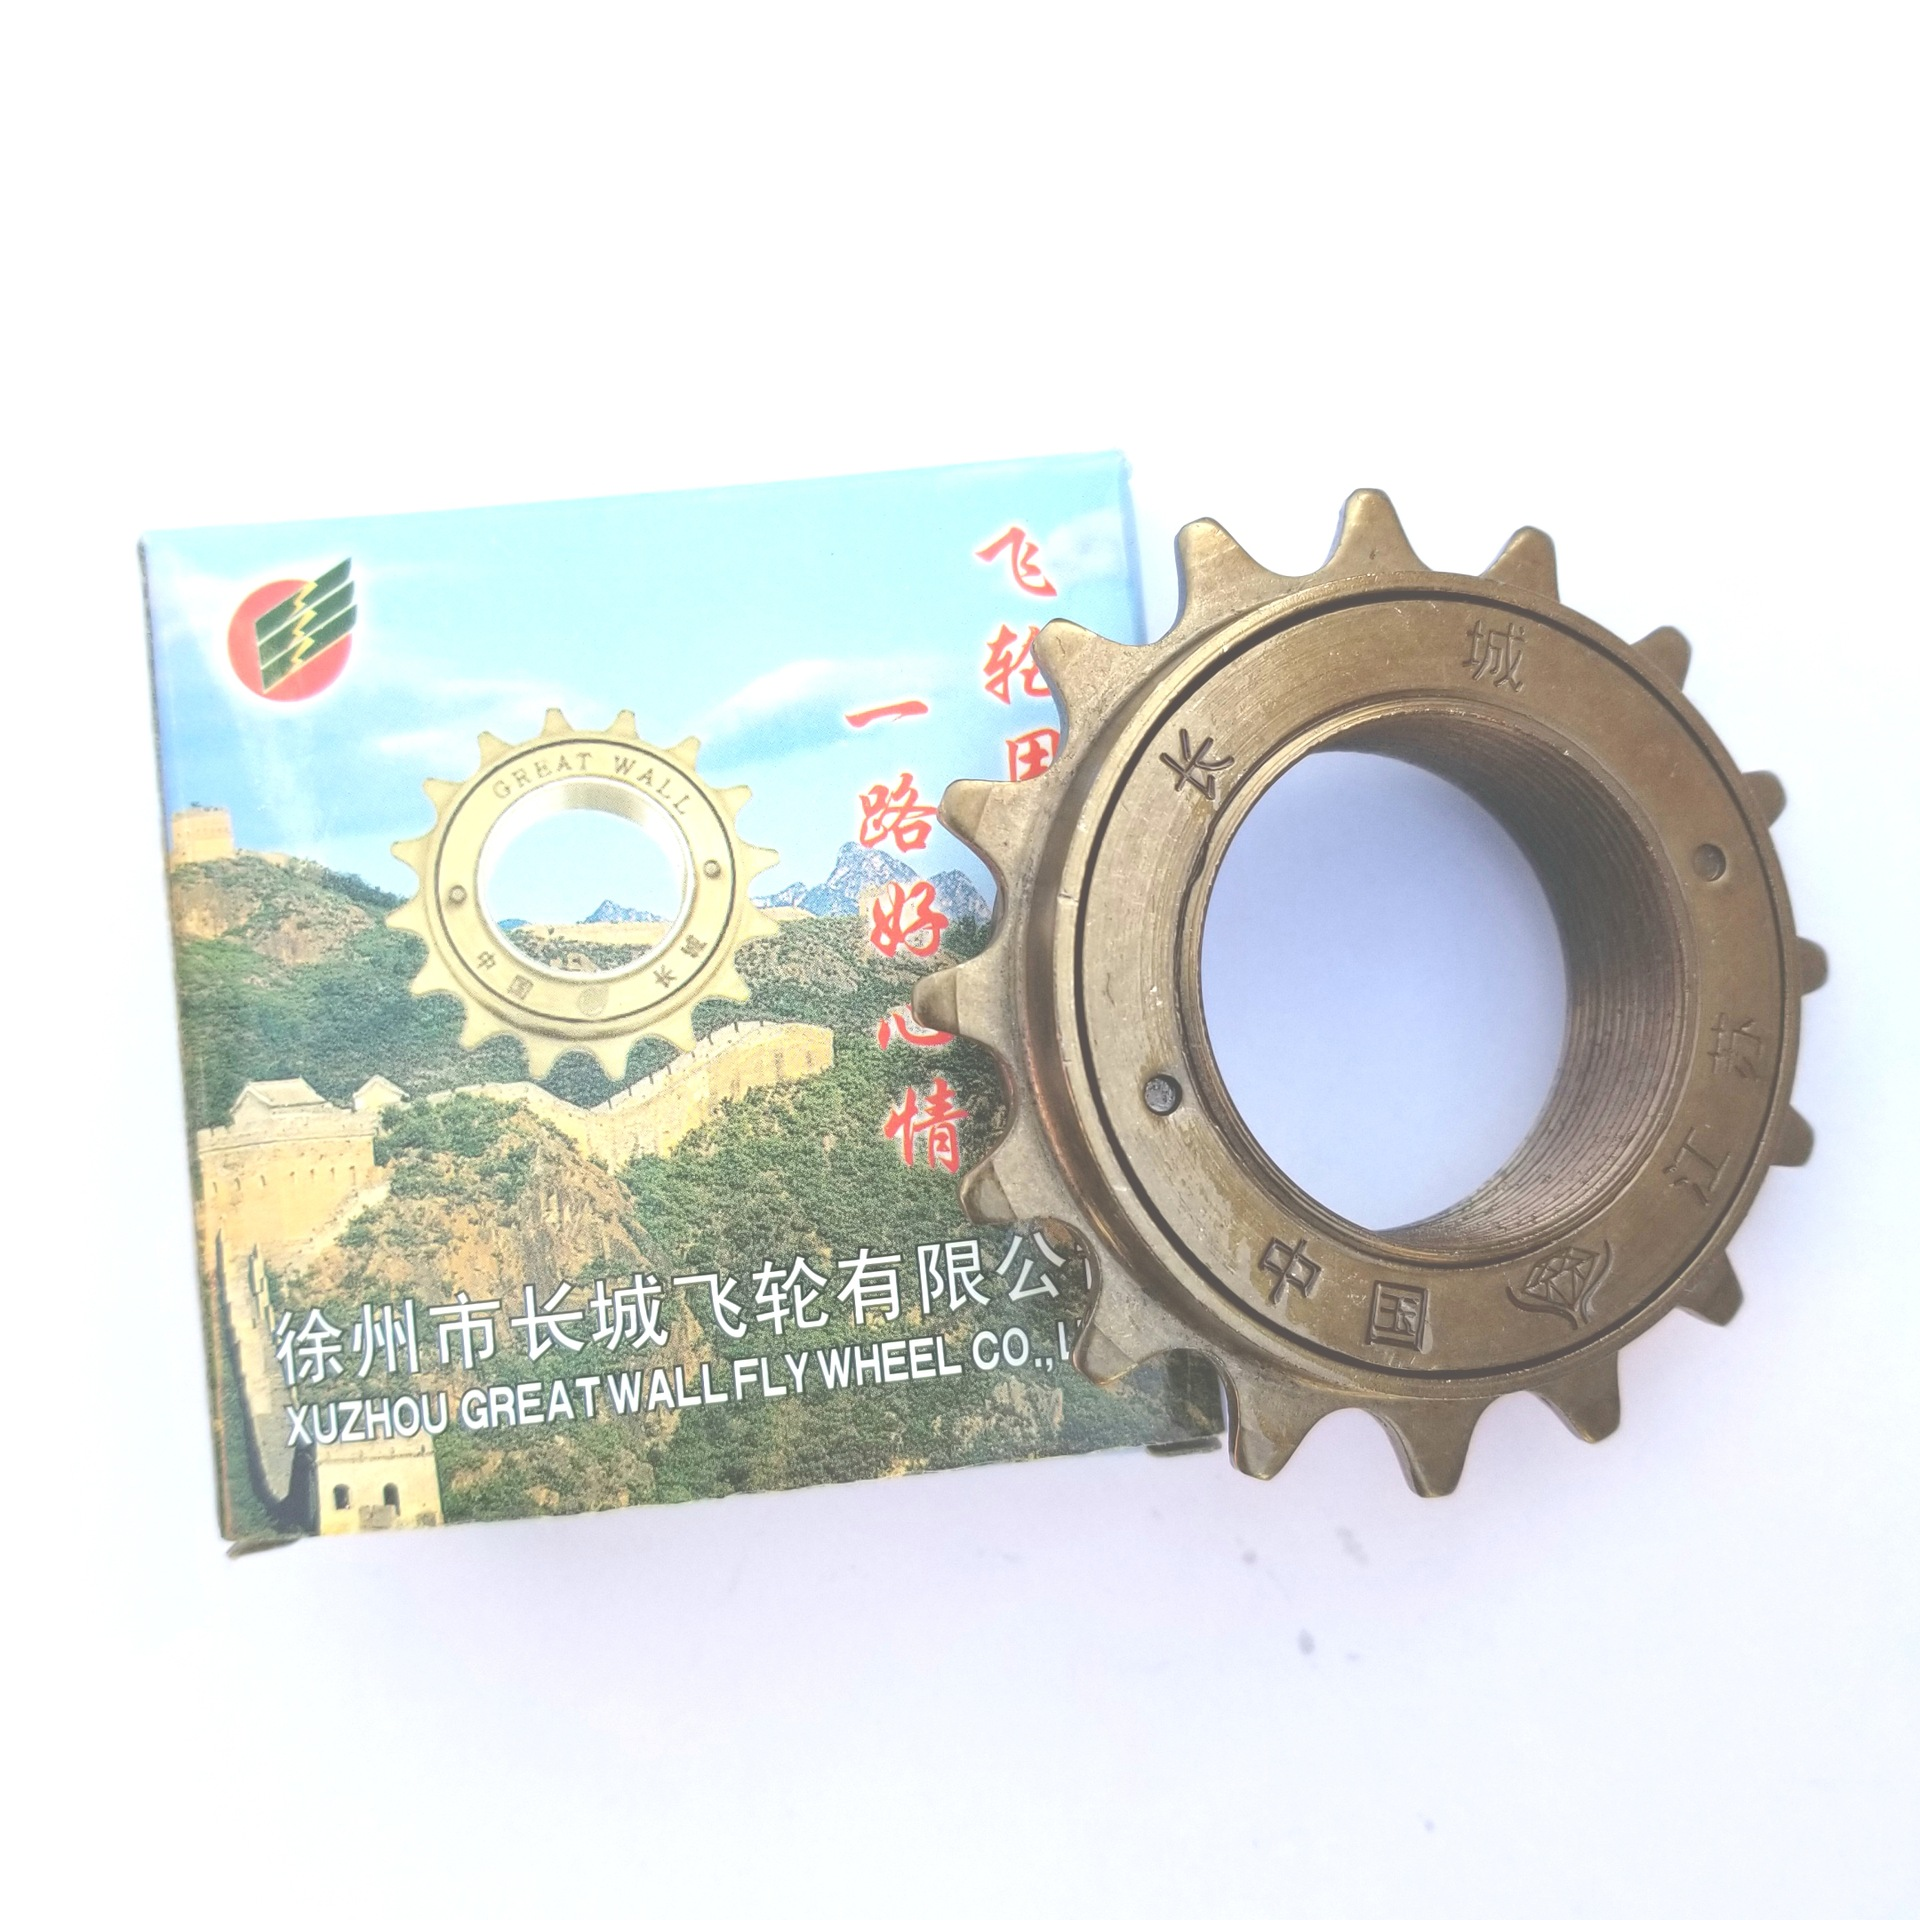 16T Flywheel Bicycle 16 Tooth Flywheel Single-Speed Electric Car Flywheel Stroller Dead Coaster Flywheel